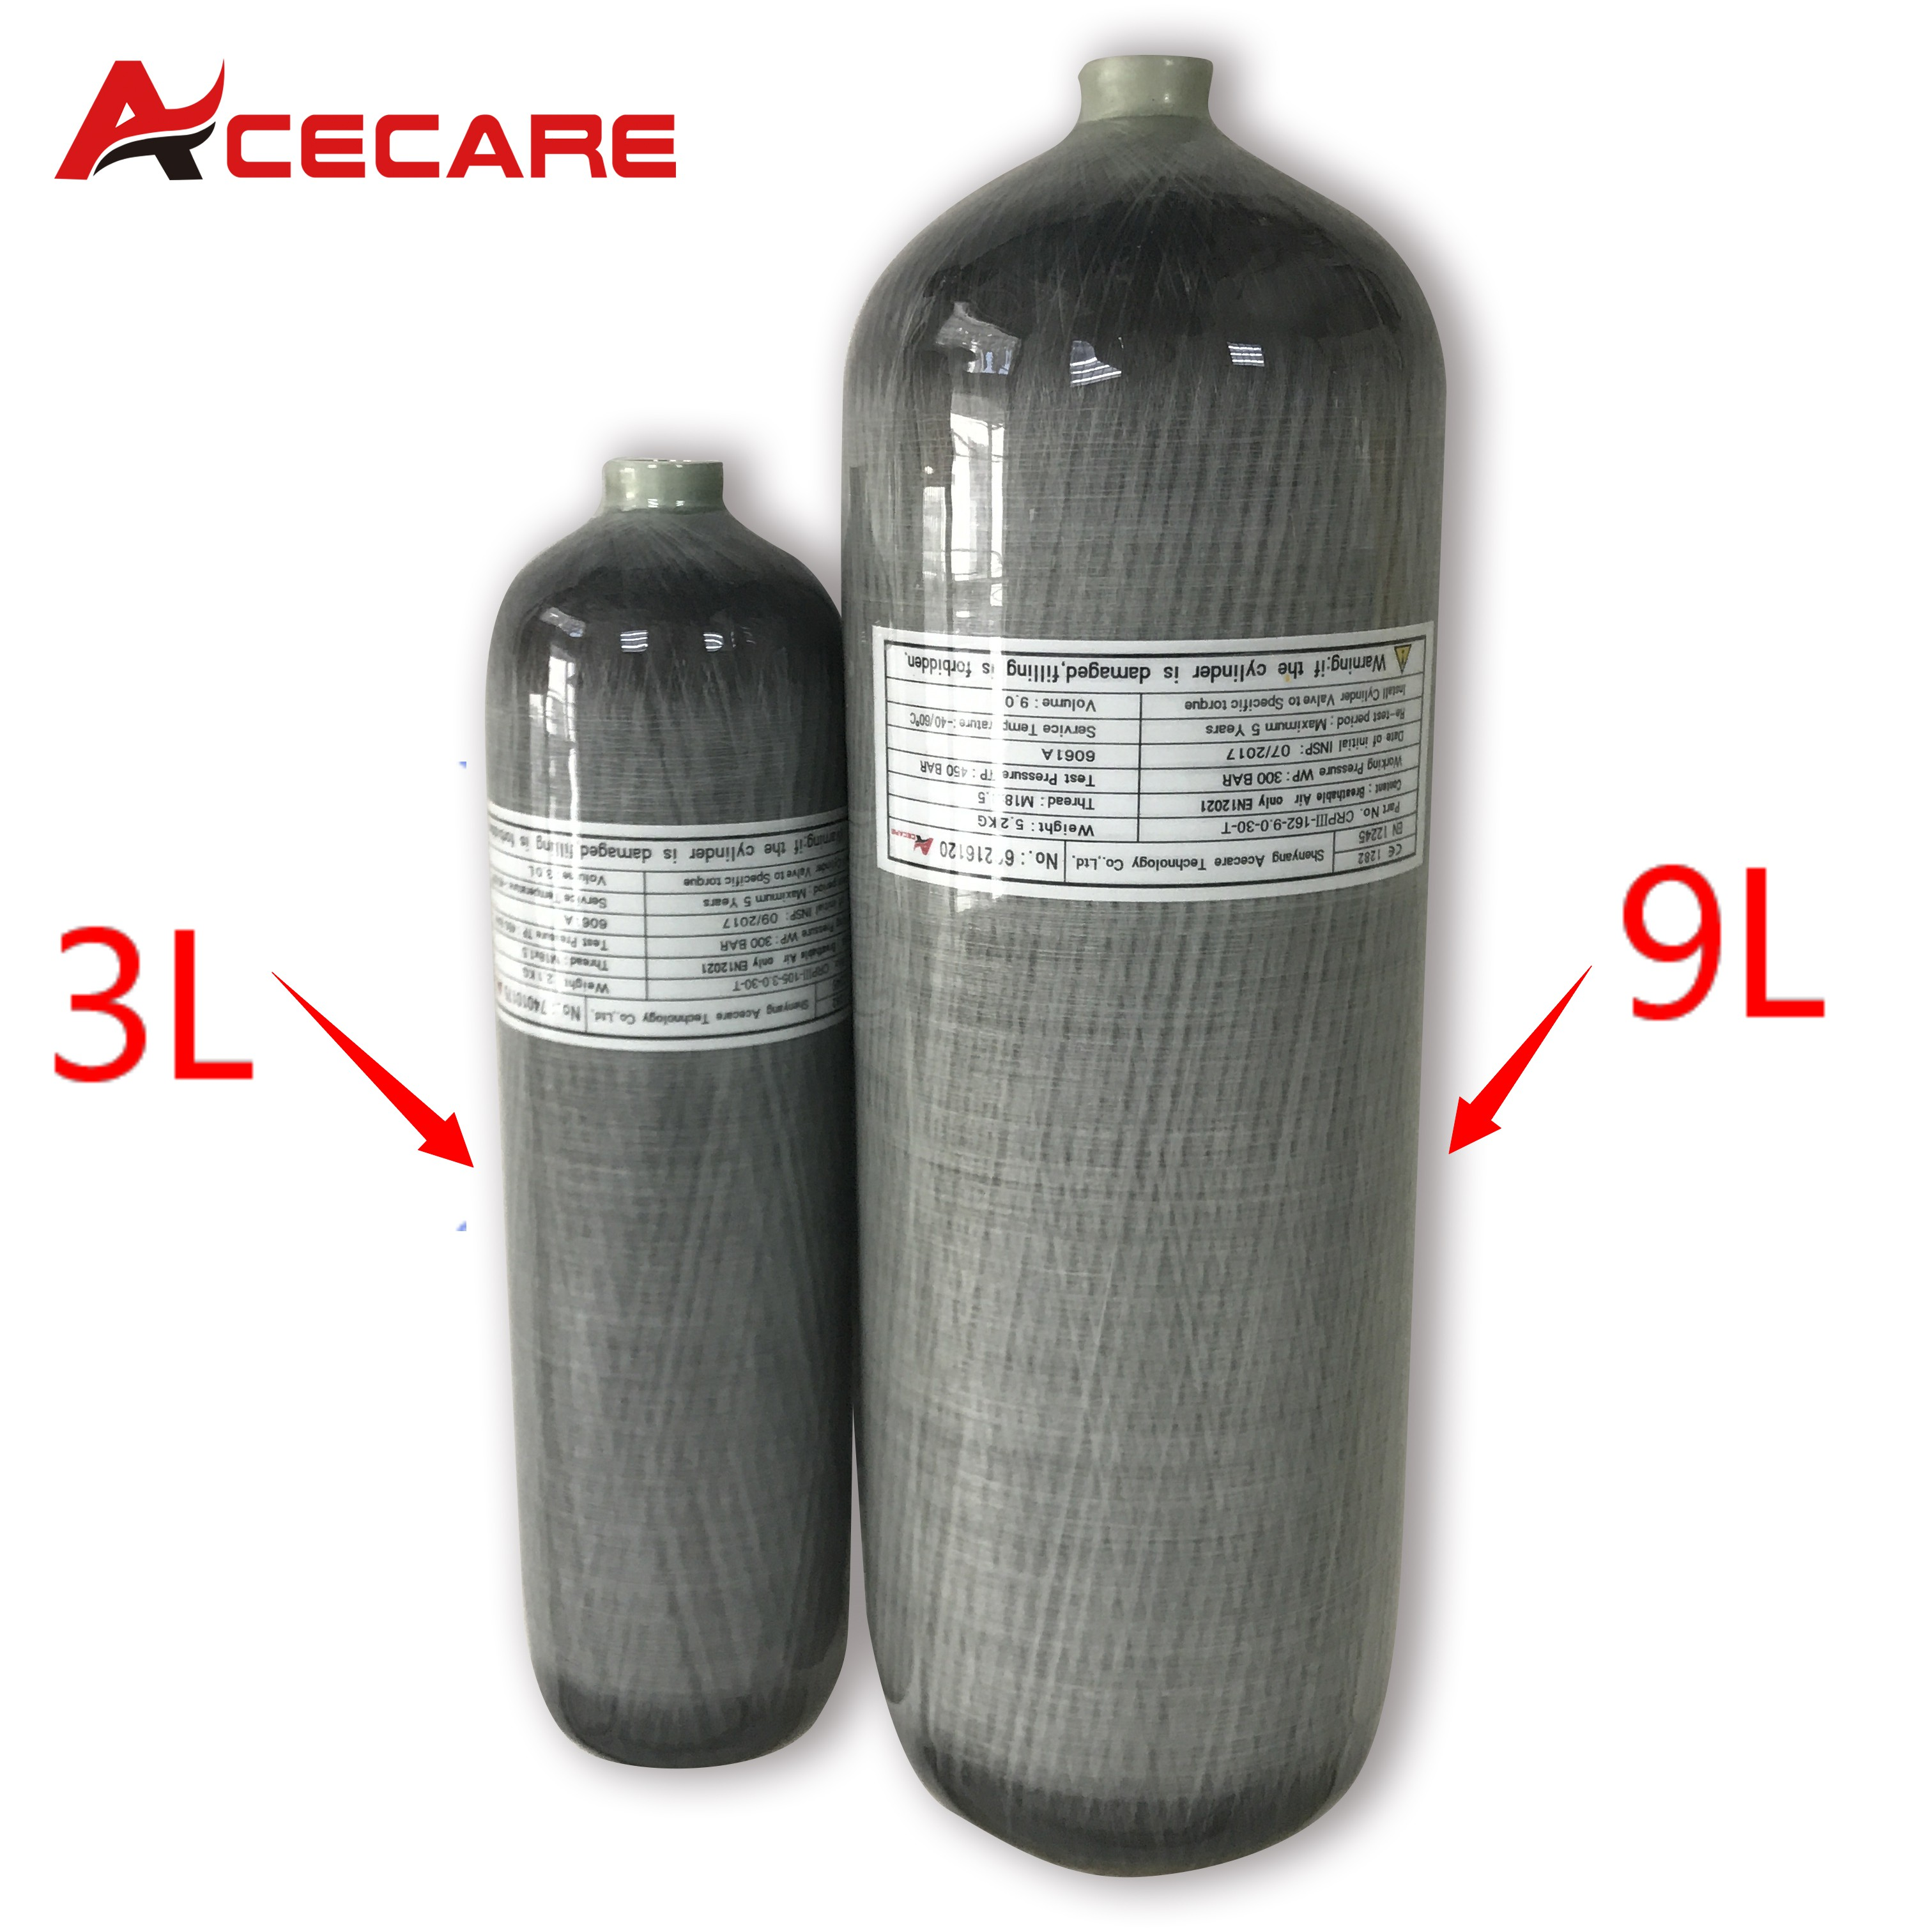 Acecare Pcp Air Rifle Cylinder Carbon Fiber 3L/9L 4500Psi Tank Compressed Air Guns To Hunt Air Rifle Speargun Spearfishing Pcp